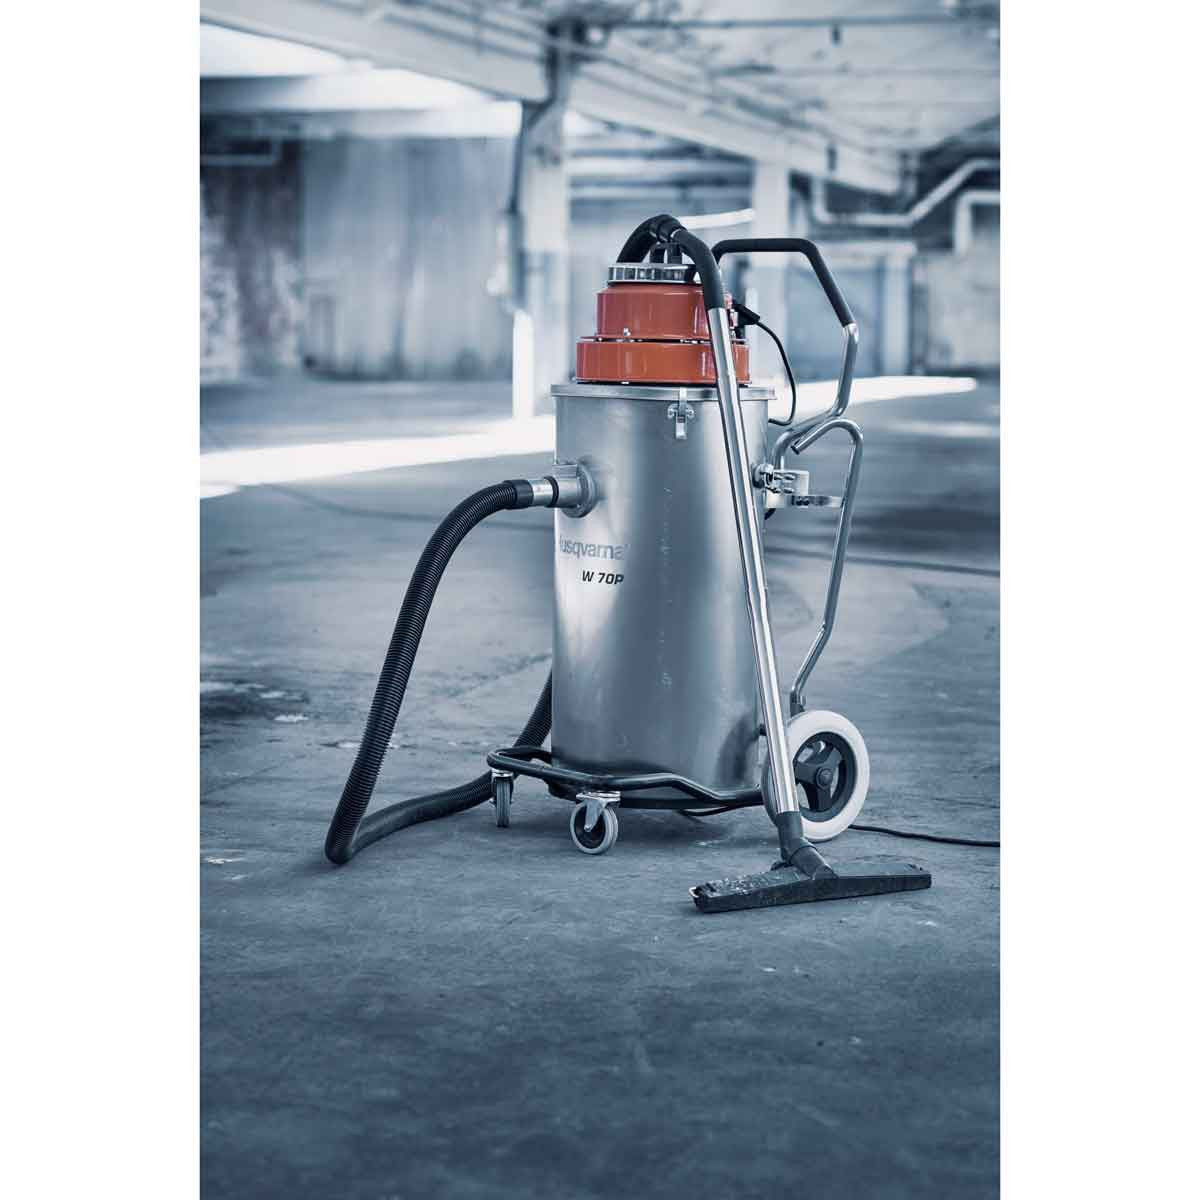 Husqvarna W70 Slurry Management Vacuum